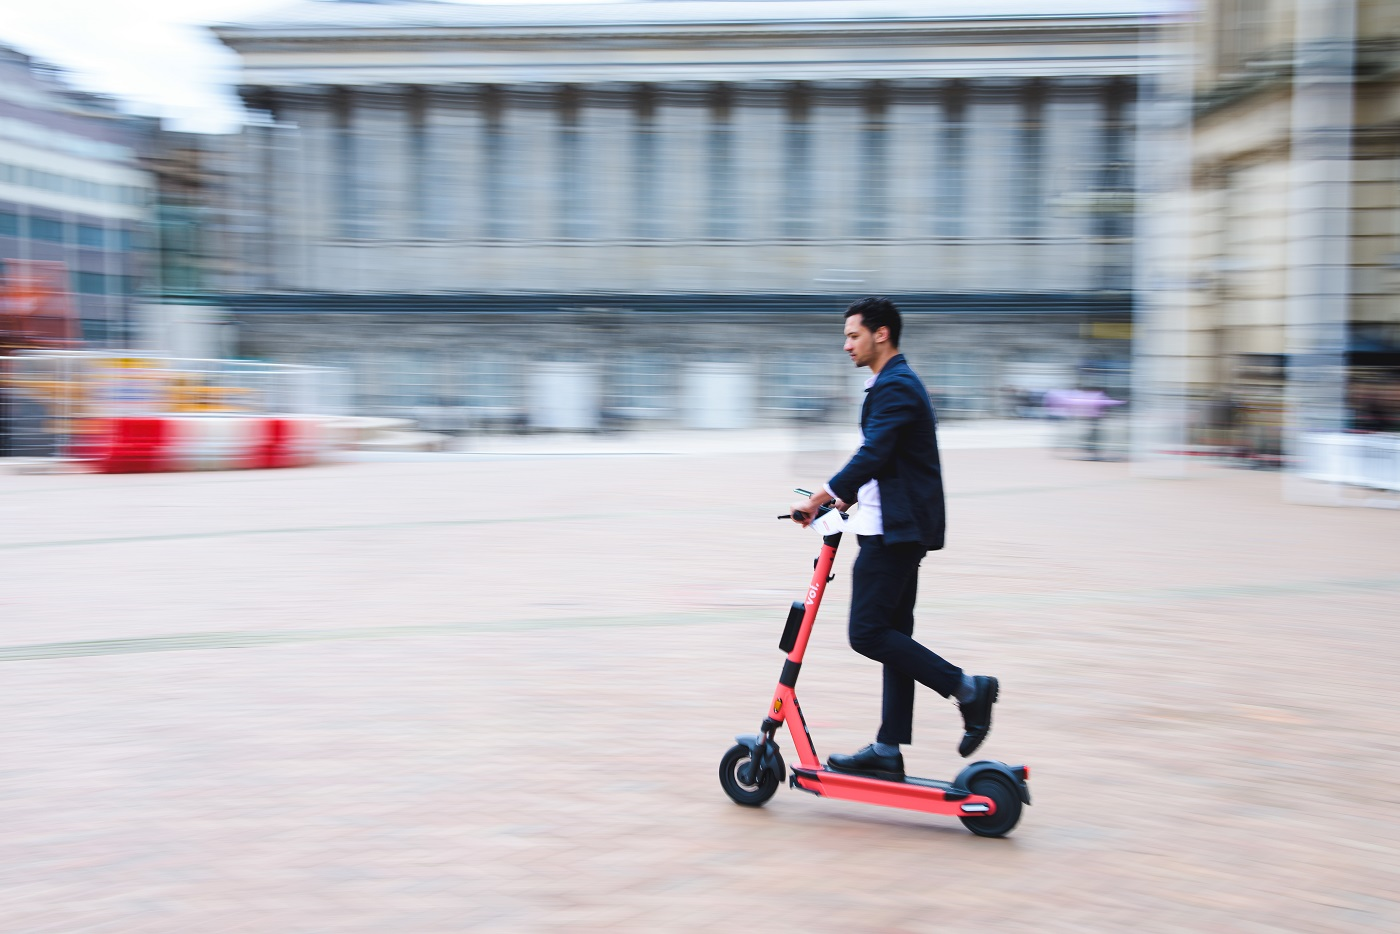 Lockdown evidence is clear: It is time to prioritise micromobility and make our cities healthier